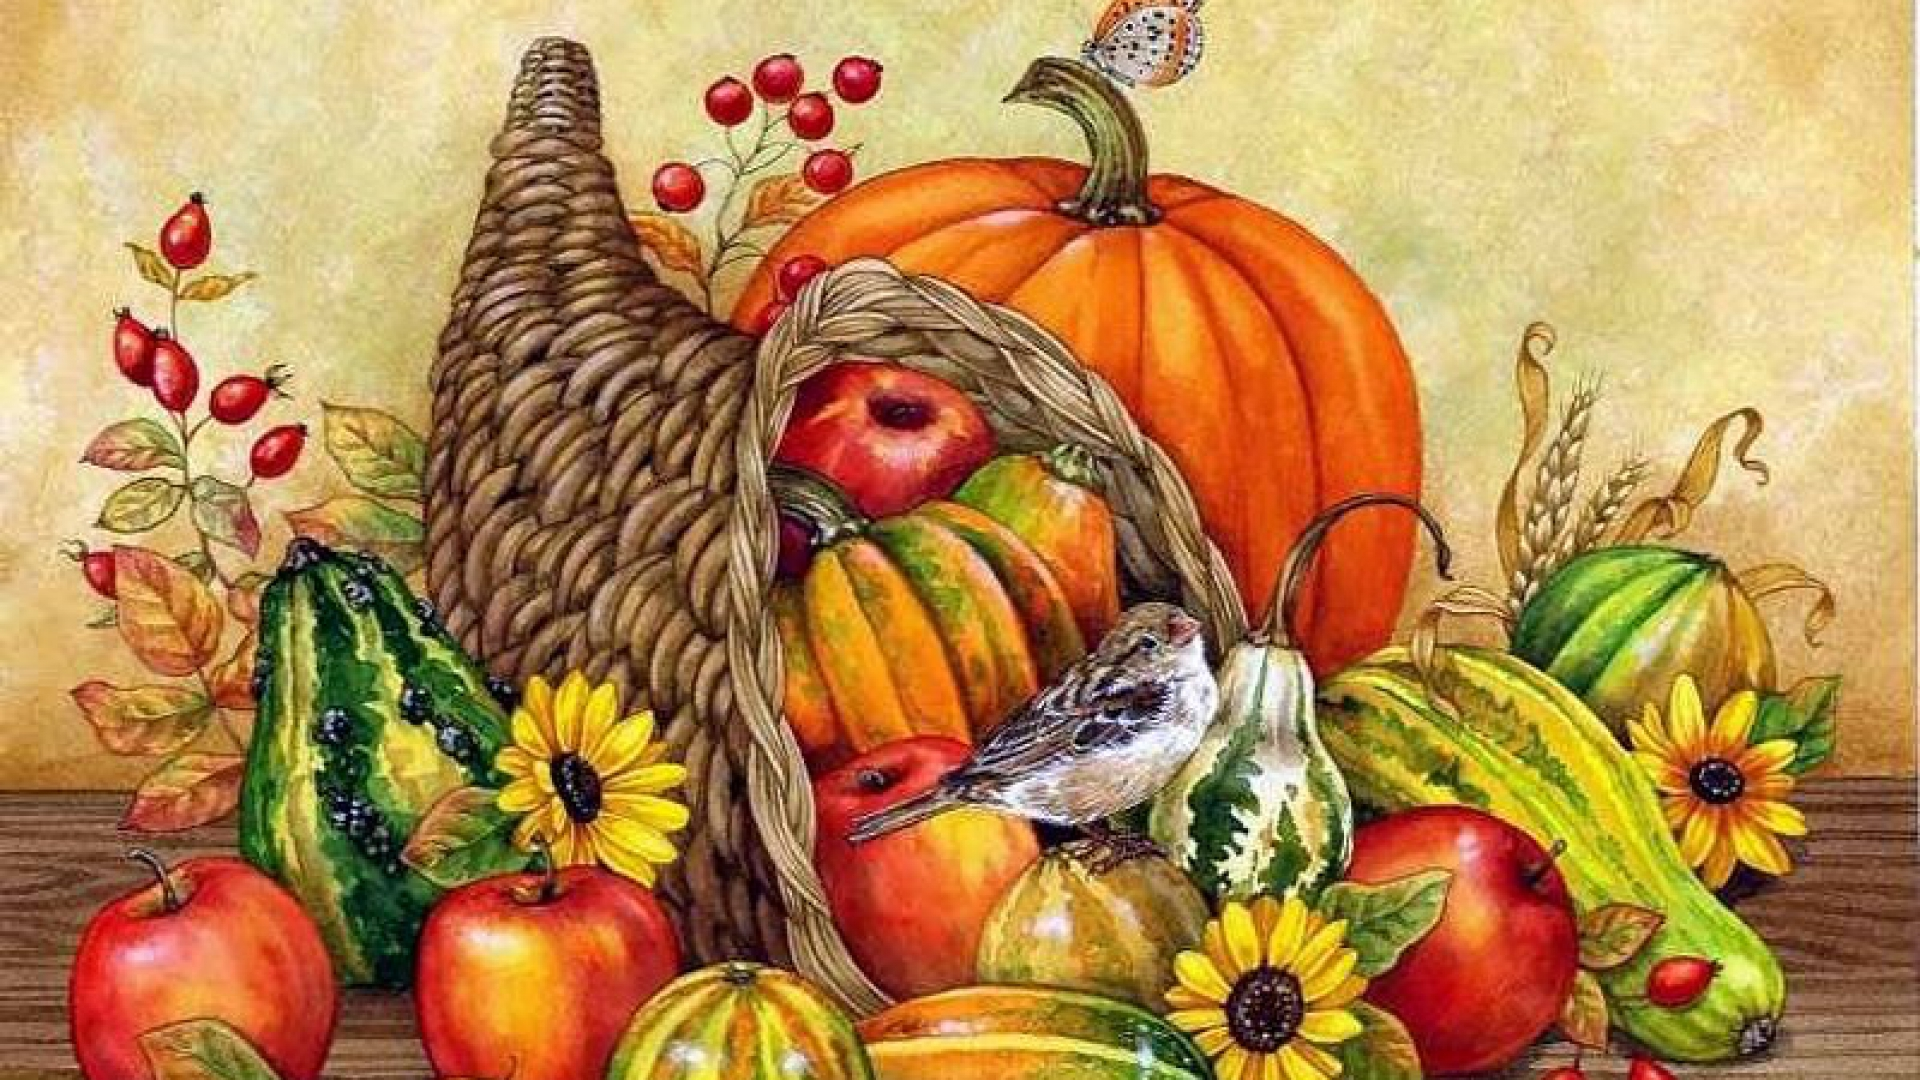 Collection of Free Desktop Wallpaper Thanksgiving on HDWallpapers